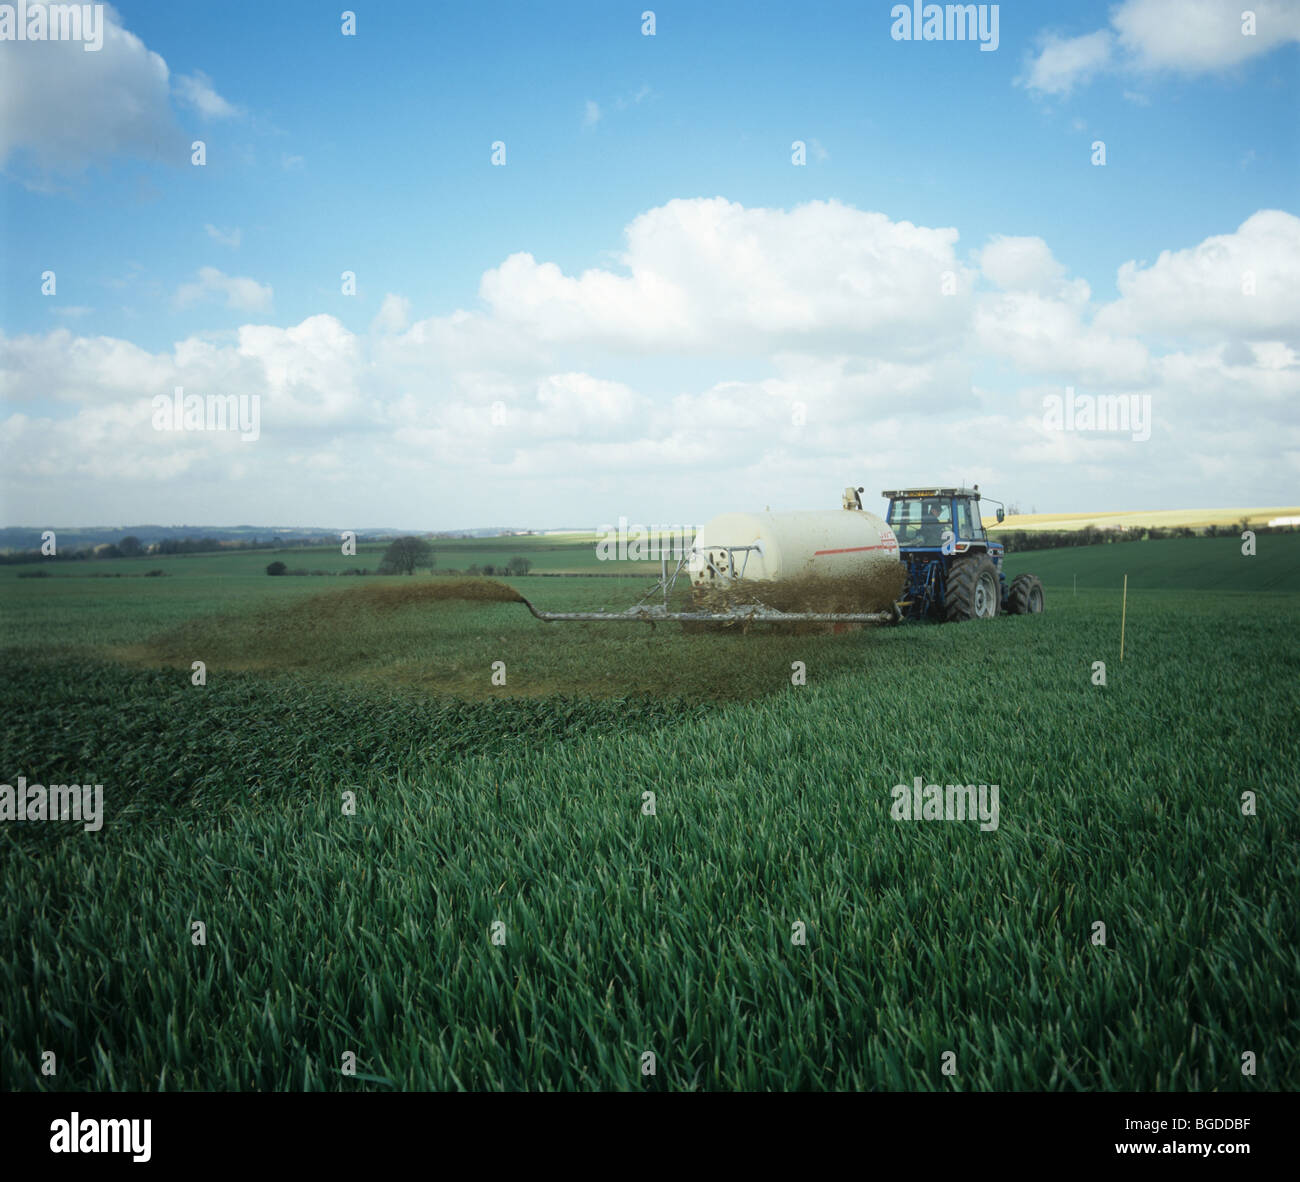 Tractor with Tramspreader, spreading slurry, organic fertilizer, on wheat crop, Hampshire - Stock Image